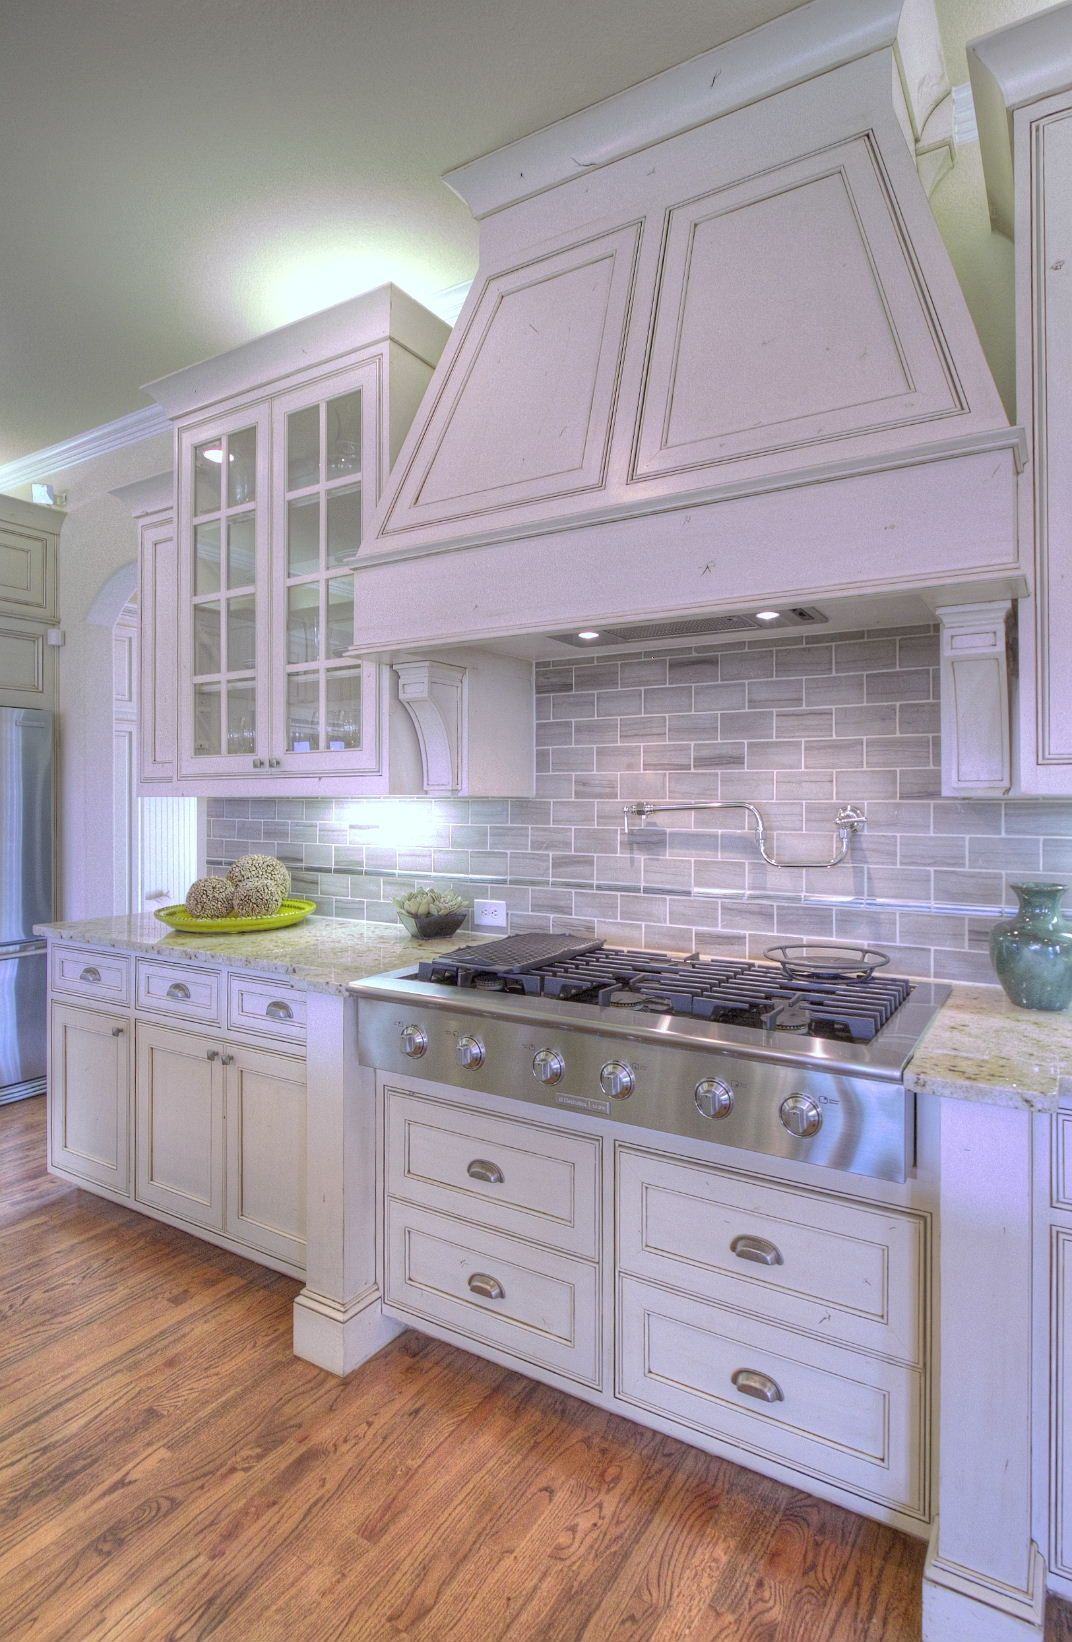 - Choosing Kitchen Backsplash Design For A Dream Kitchen Kitchen